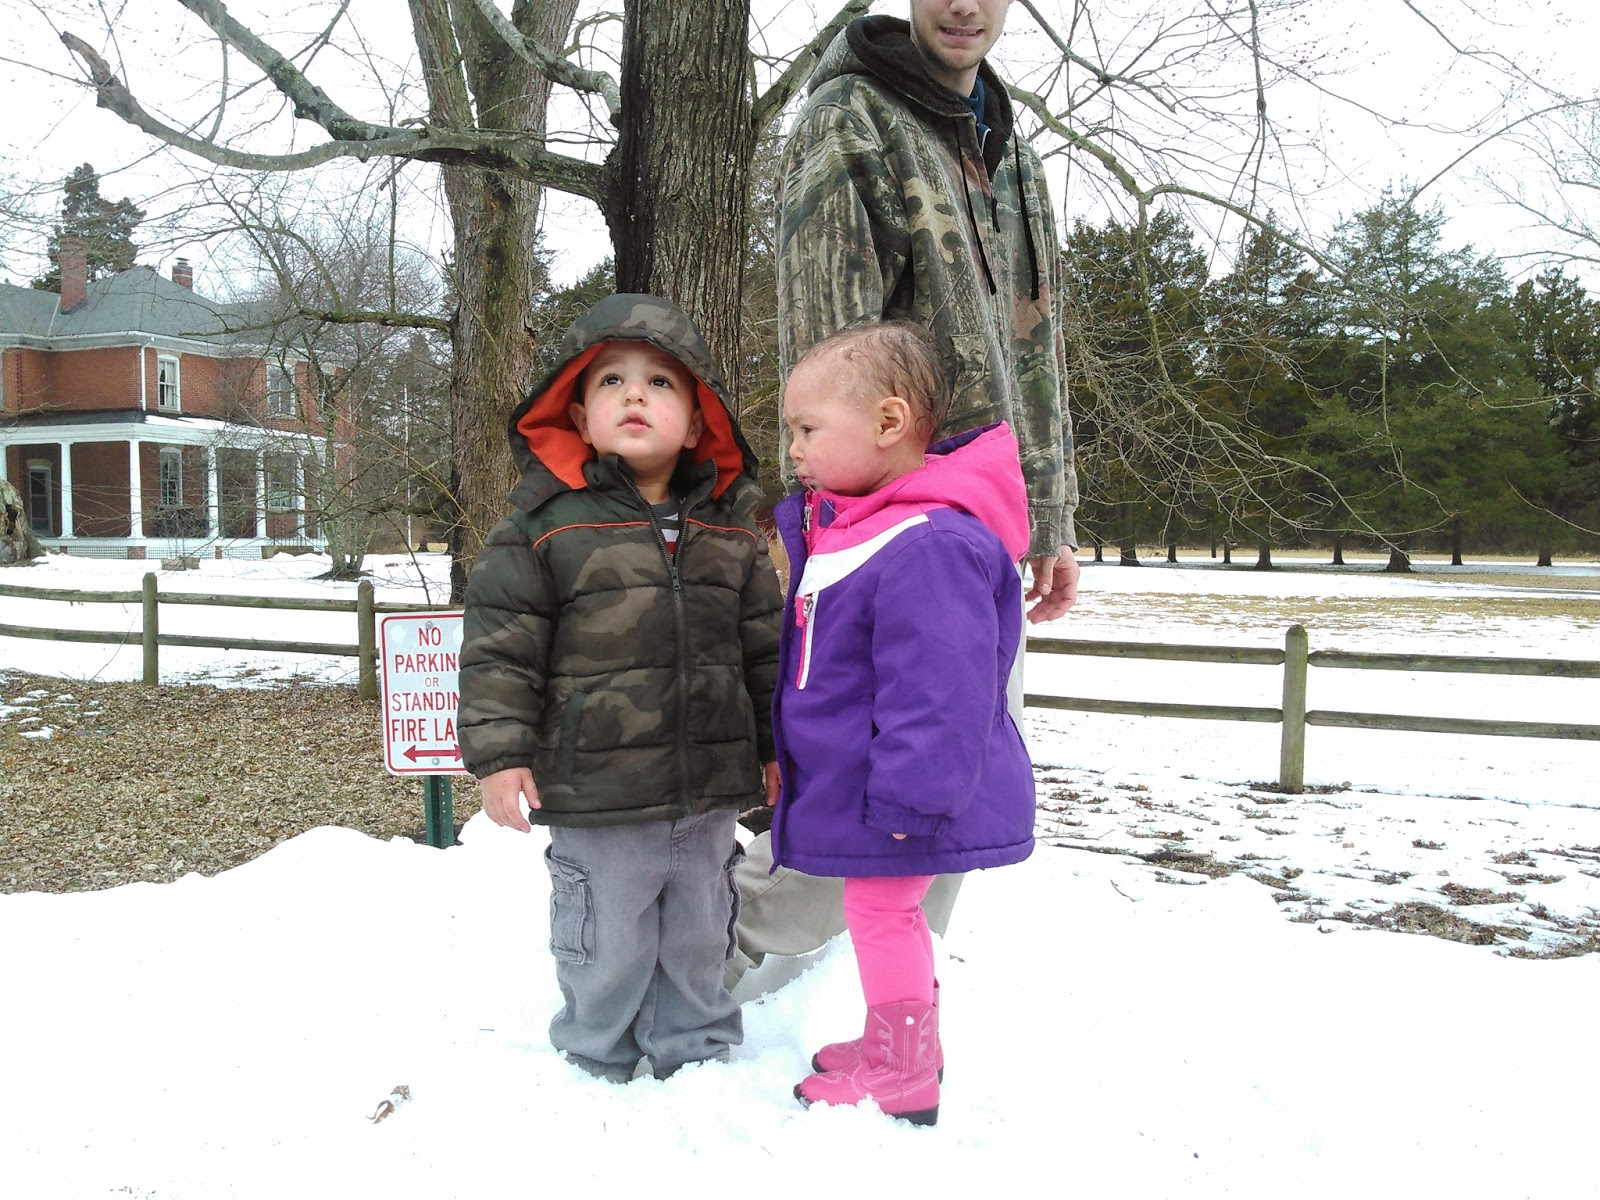 Brooklyn, who has ichthyosis, and her brother in the snow